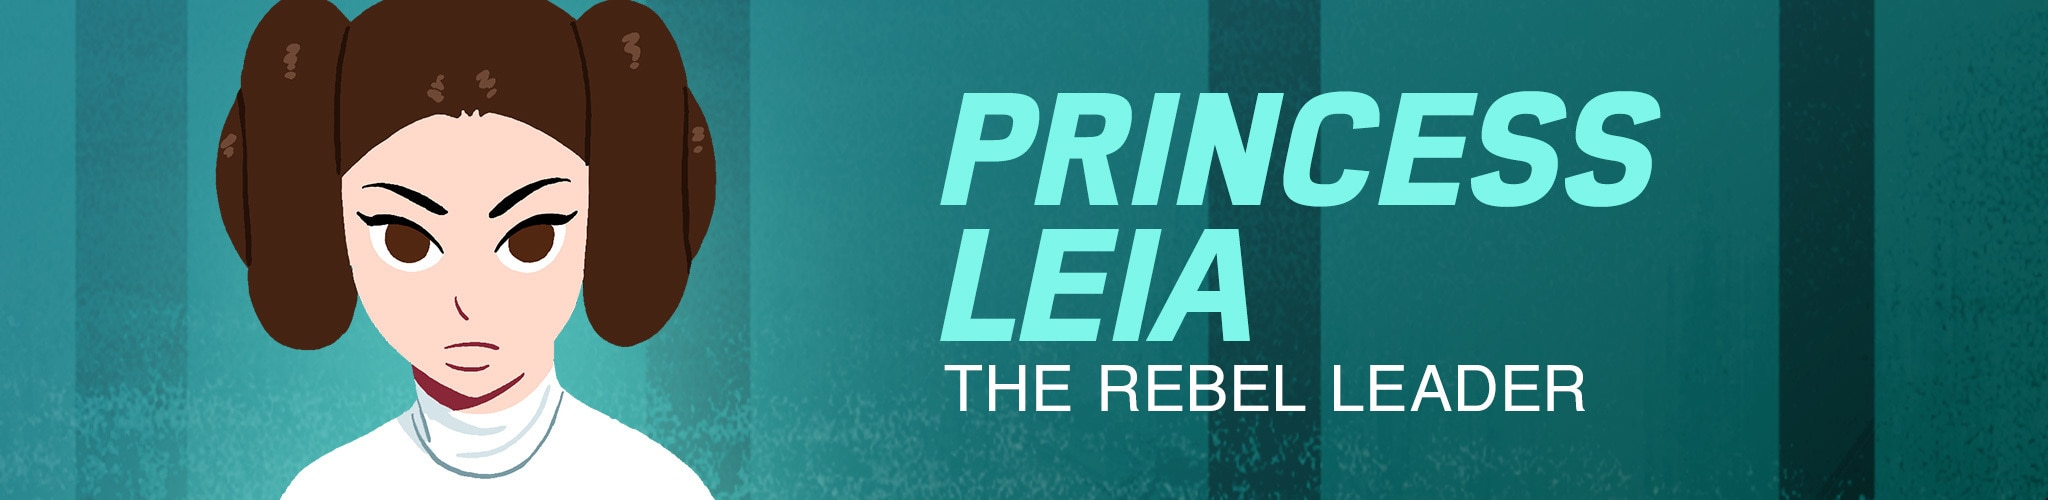 Princess Leia - The Rebel Leader